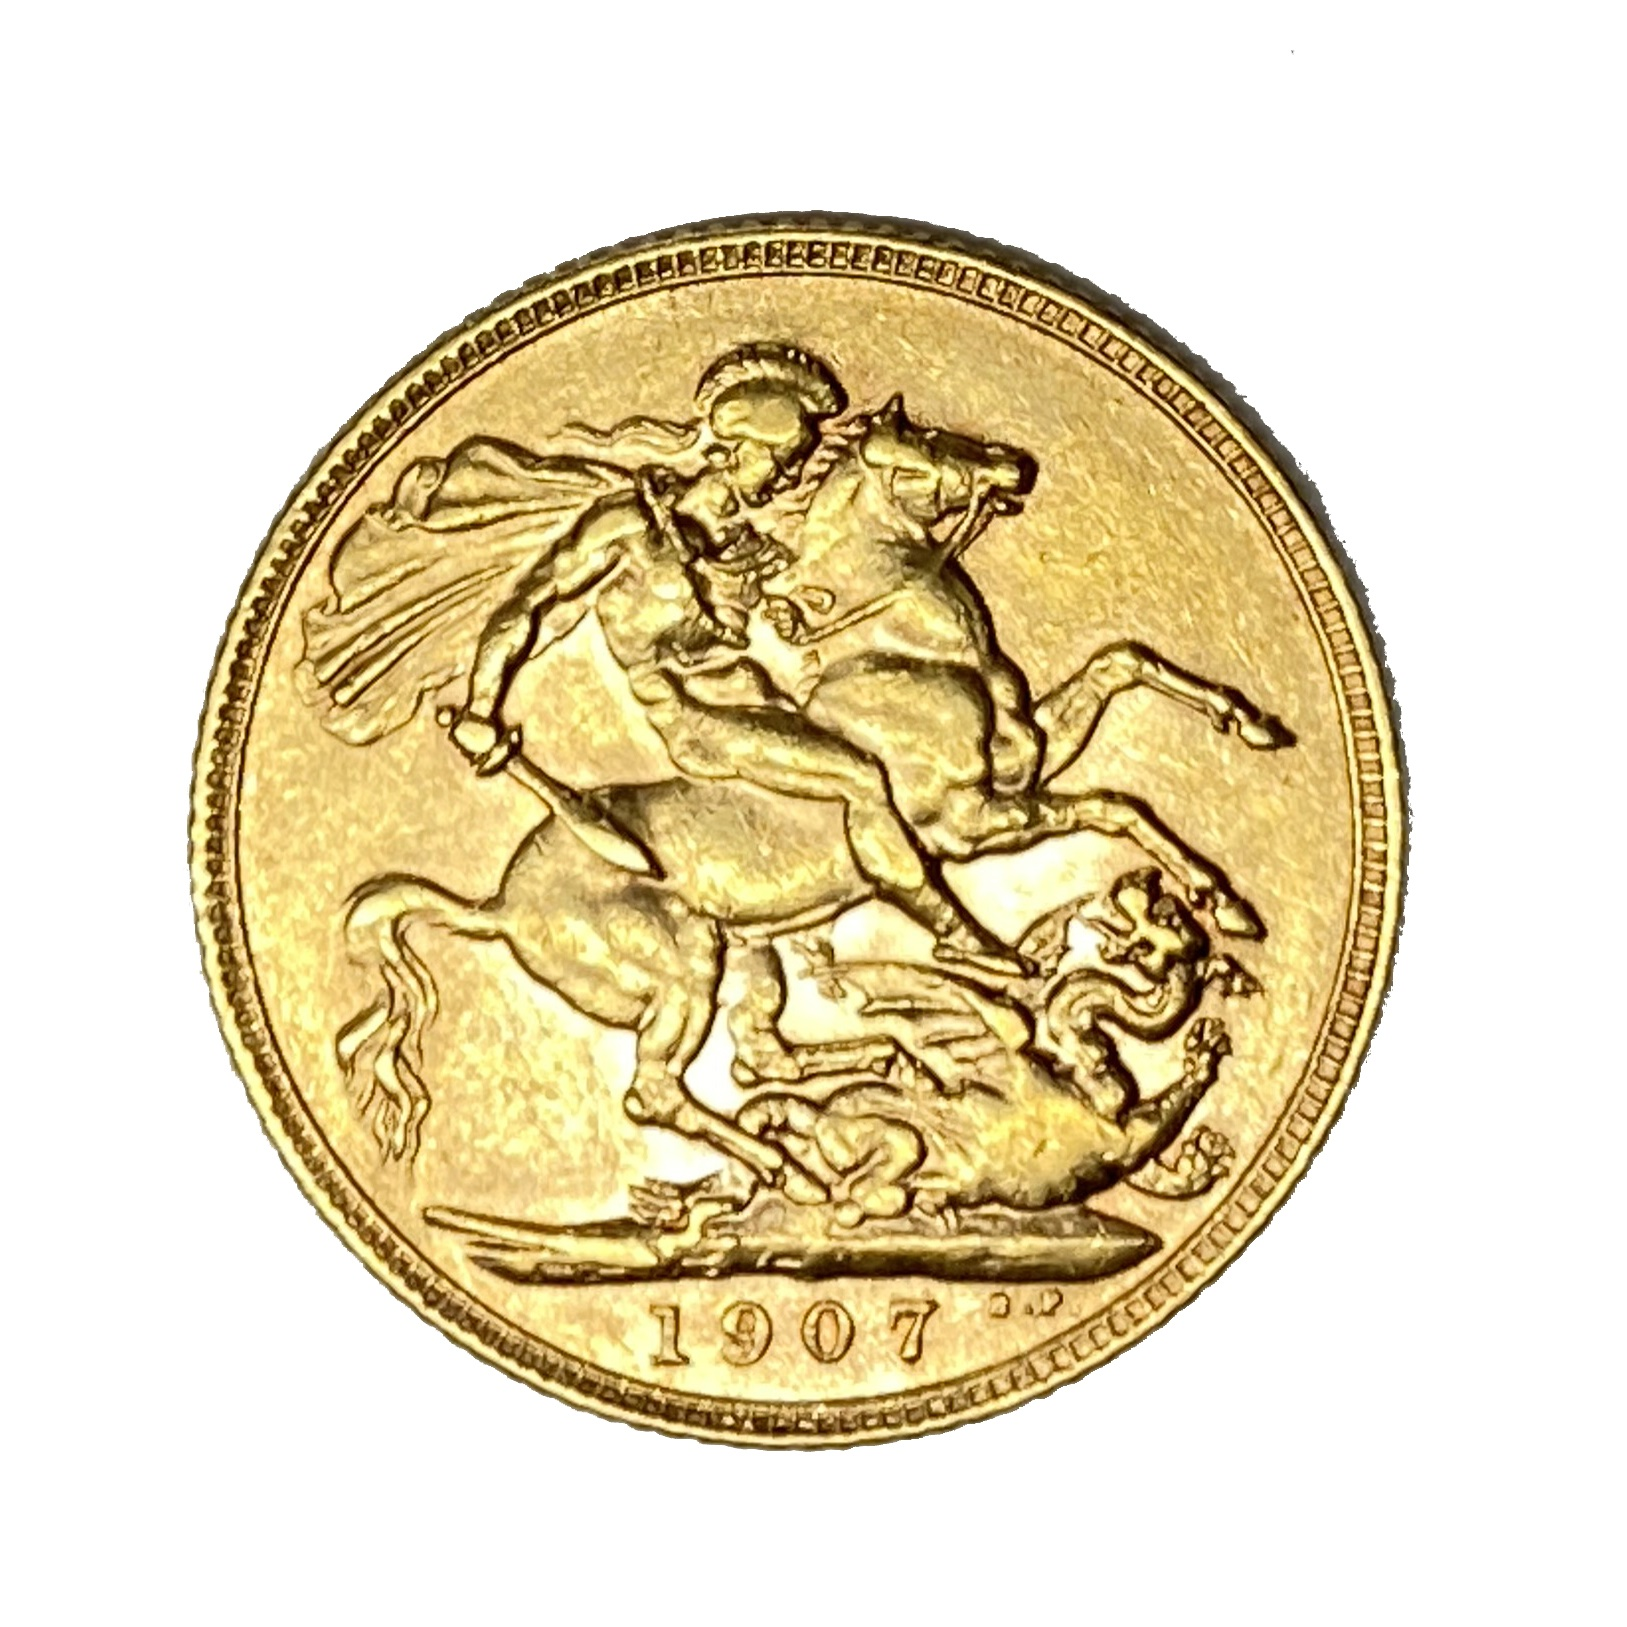 Edward VII gold Sovereign coin, 1907 - Image 2 of 2